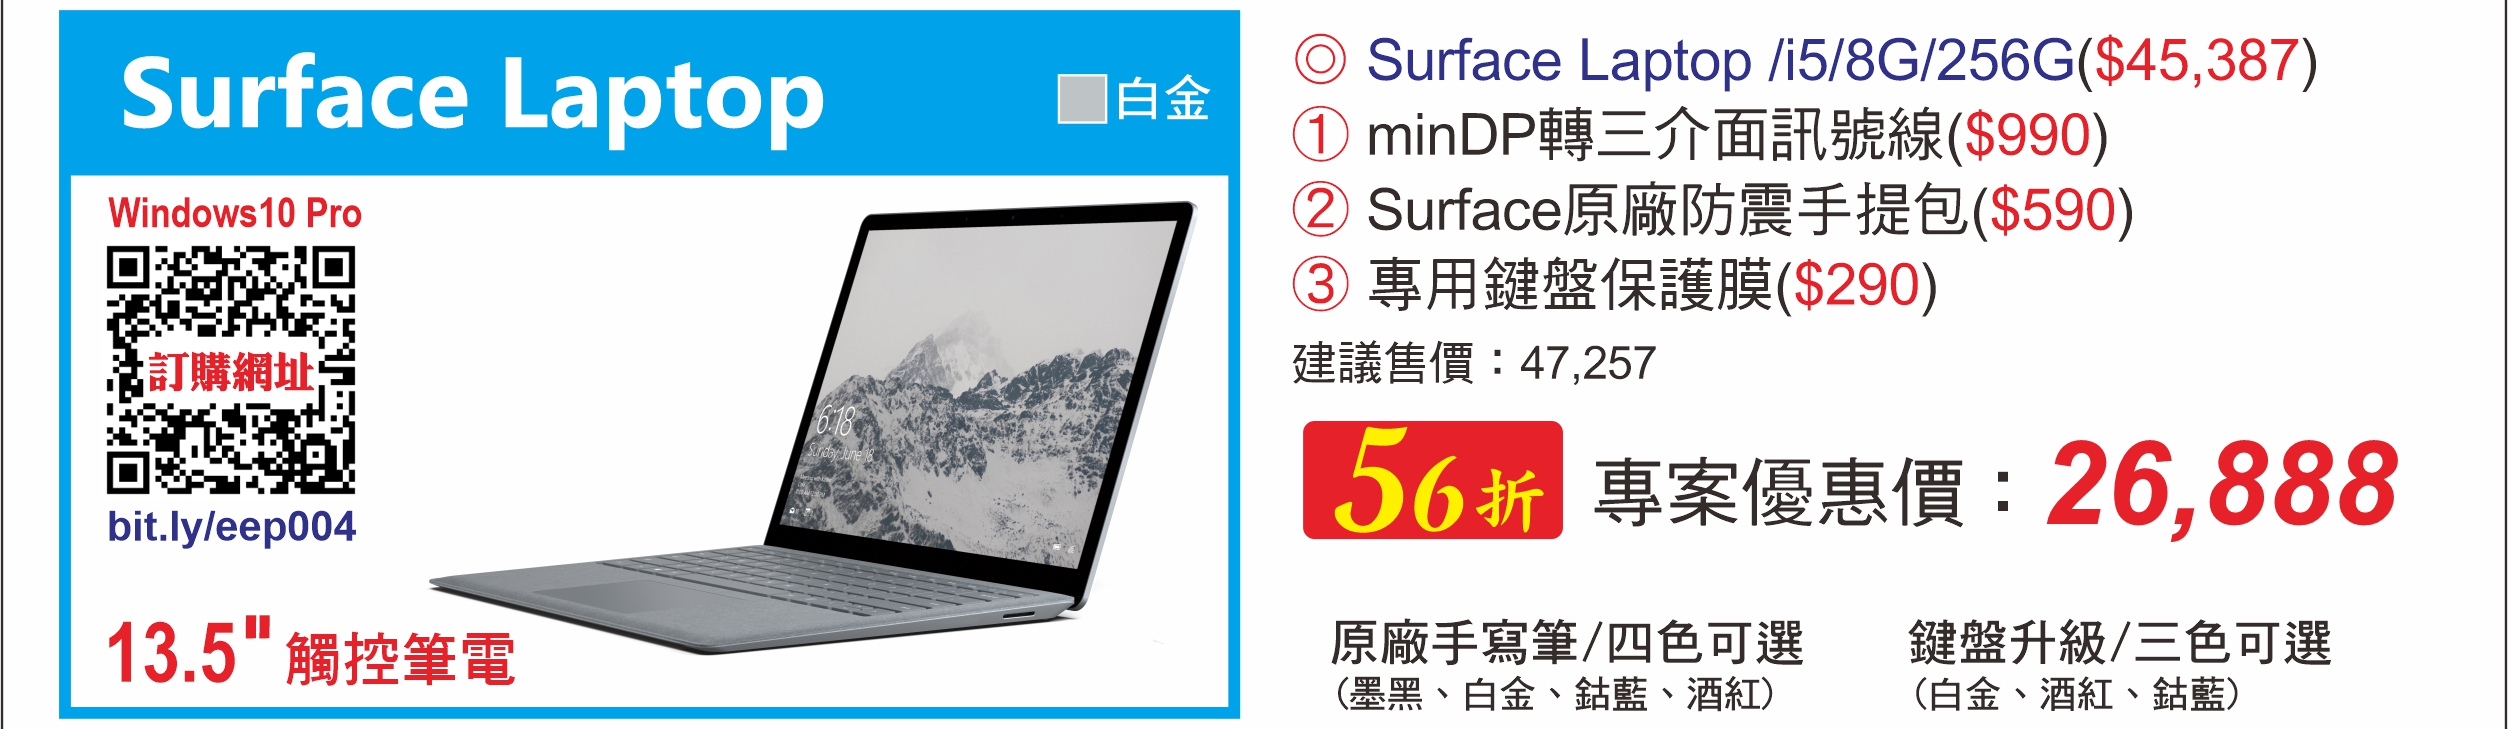 Surface Laptop i5/8G/256G 白金(企業員購)